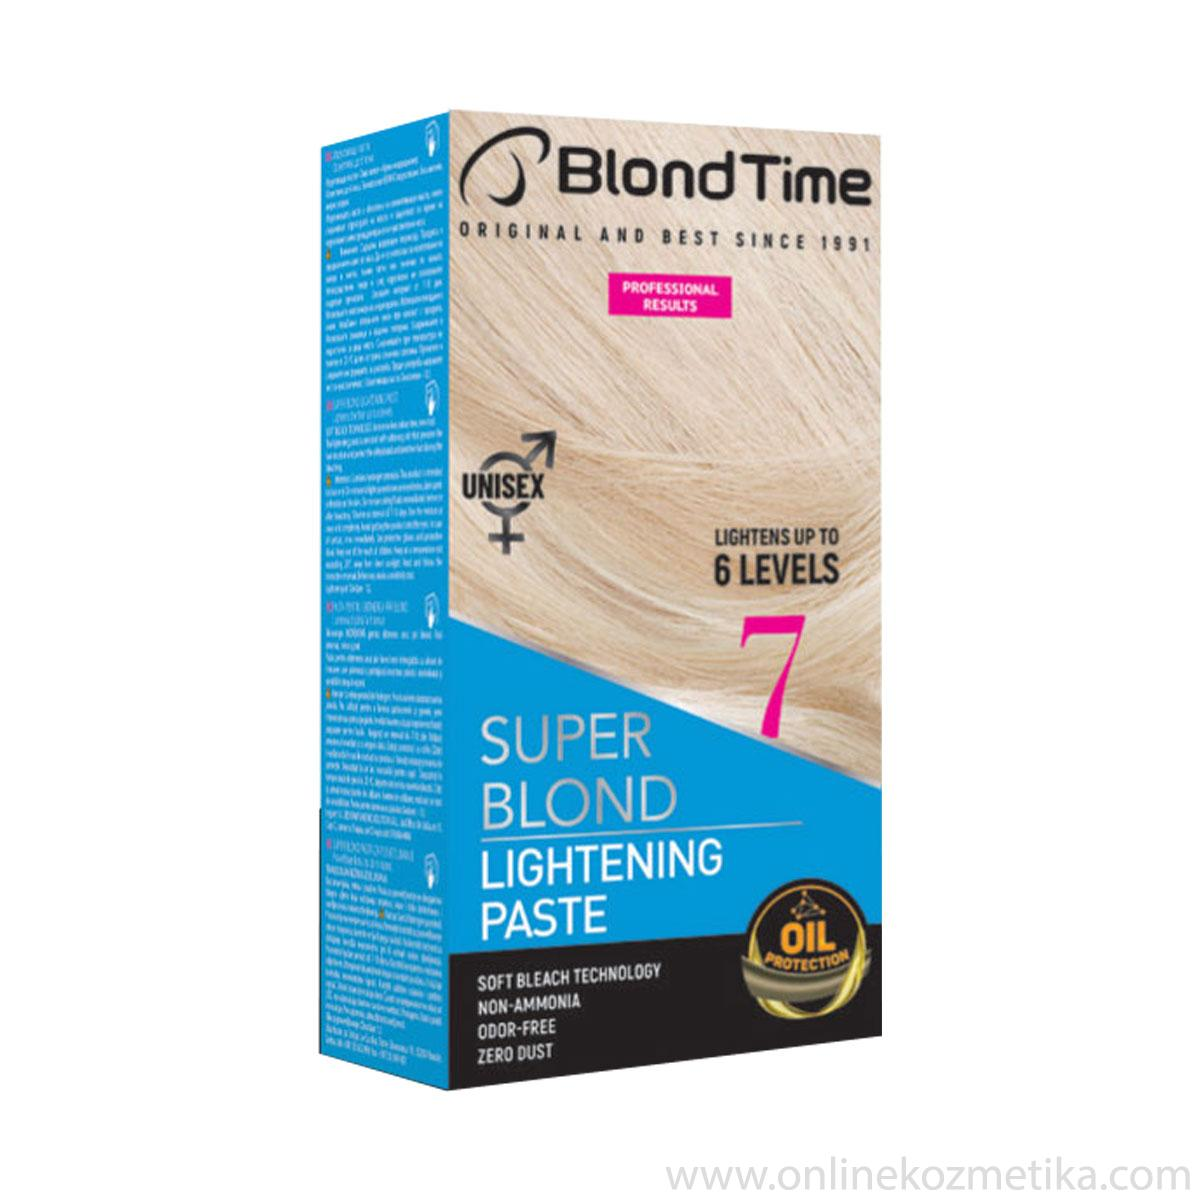 BLOND TIME Lightening Paste (7)NEW